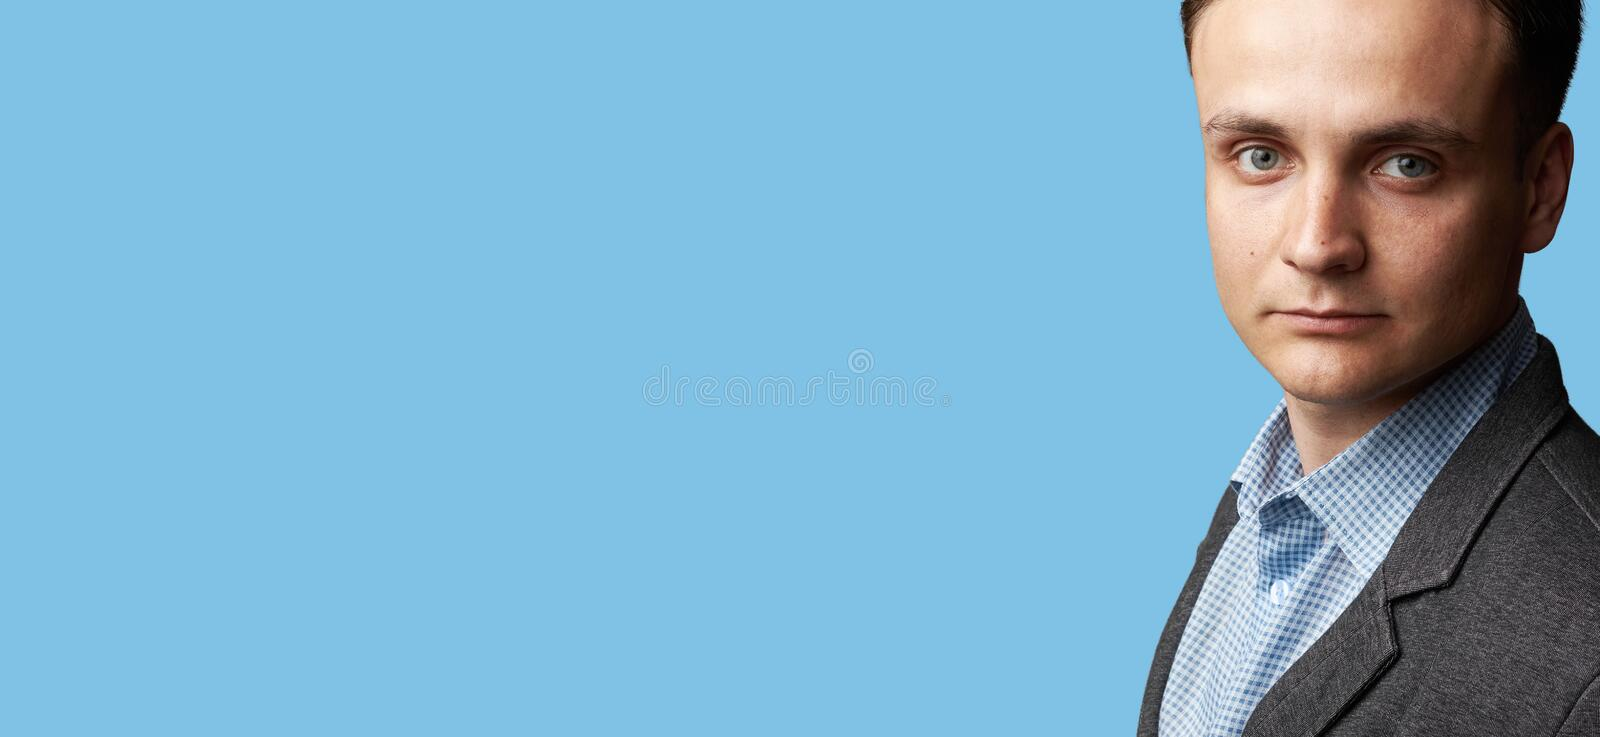 Handsome man face isolated on blue background stock photography